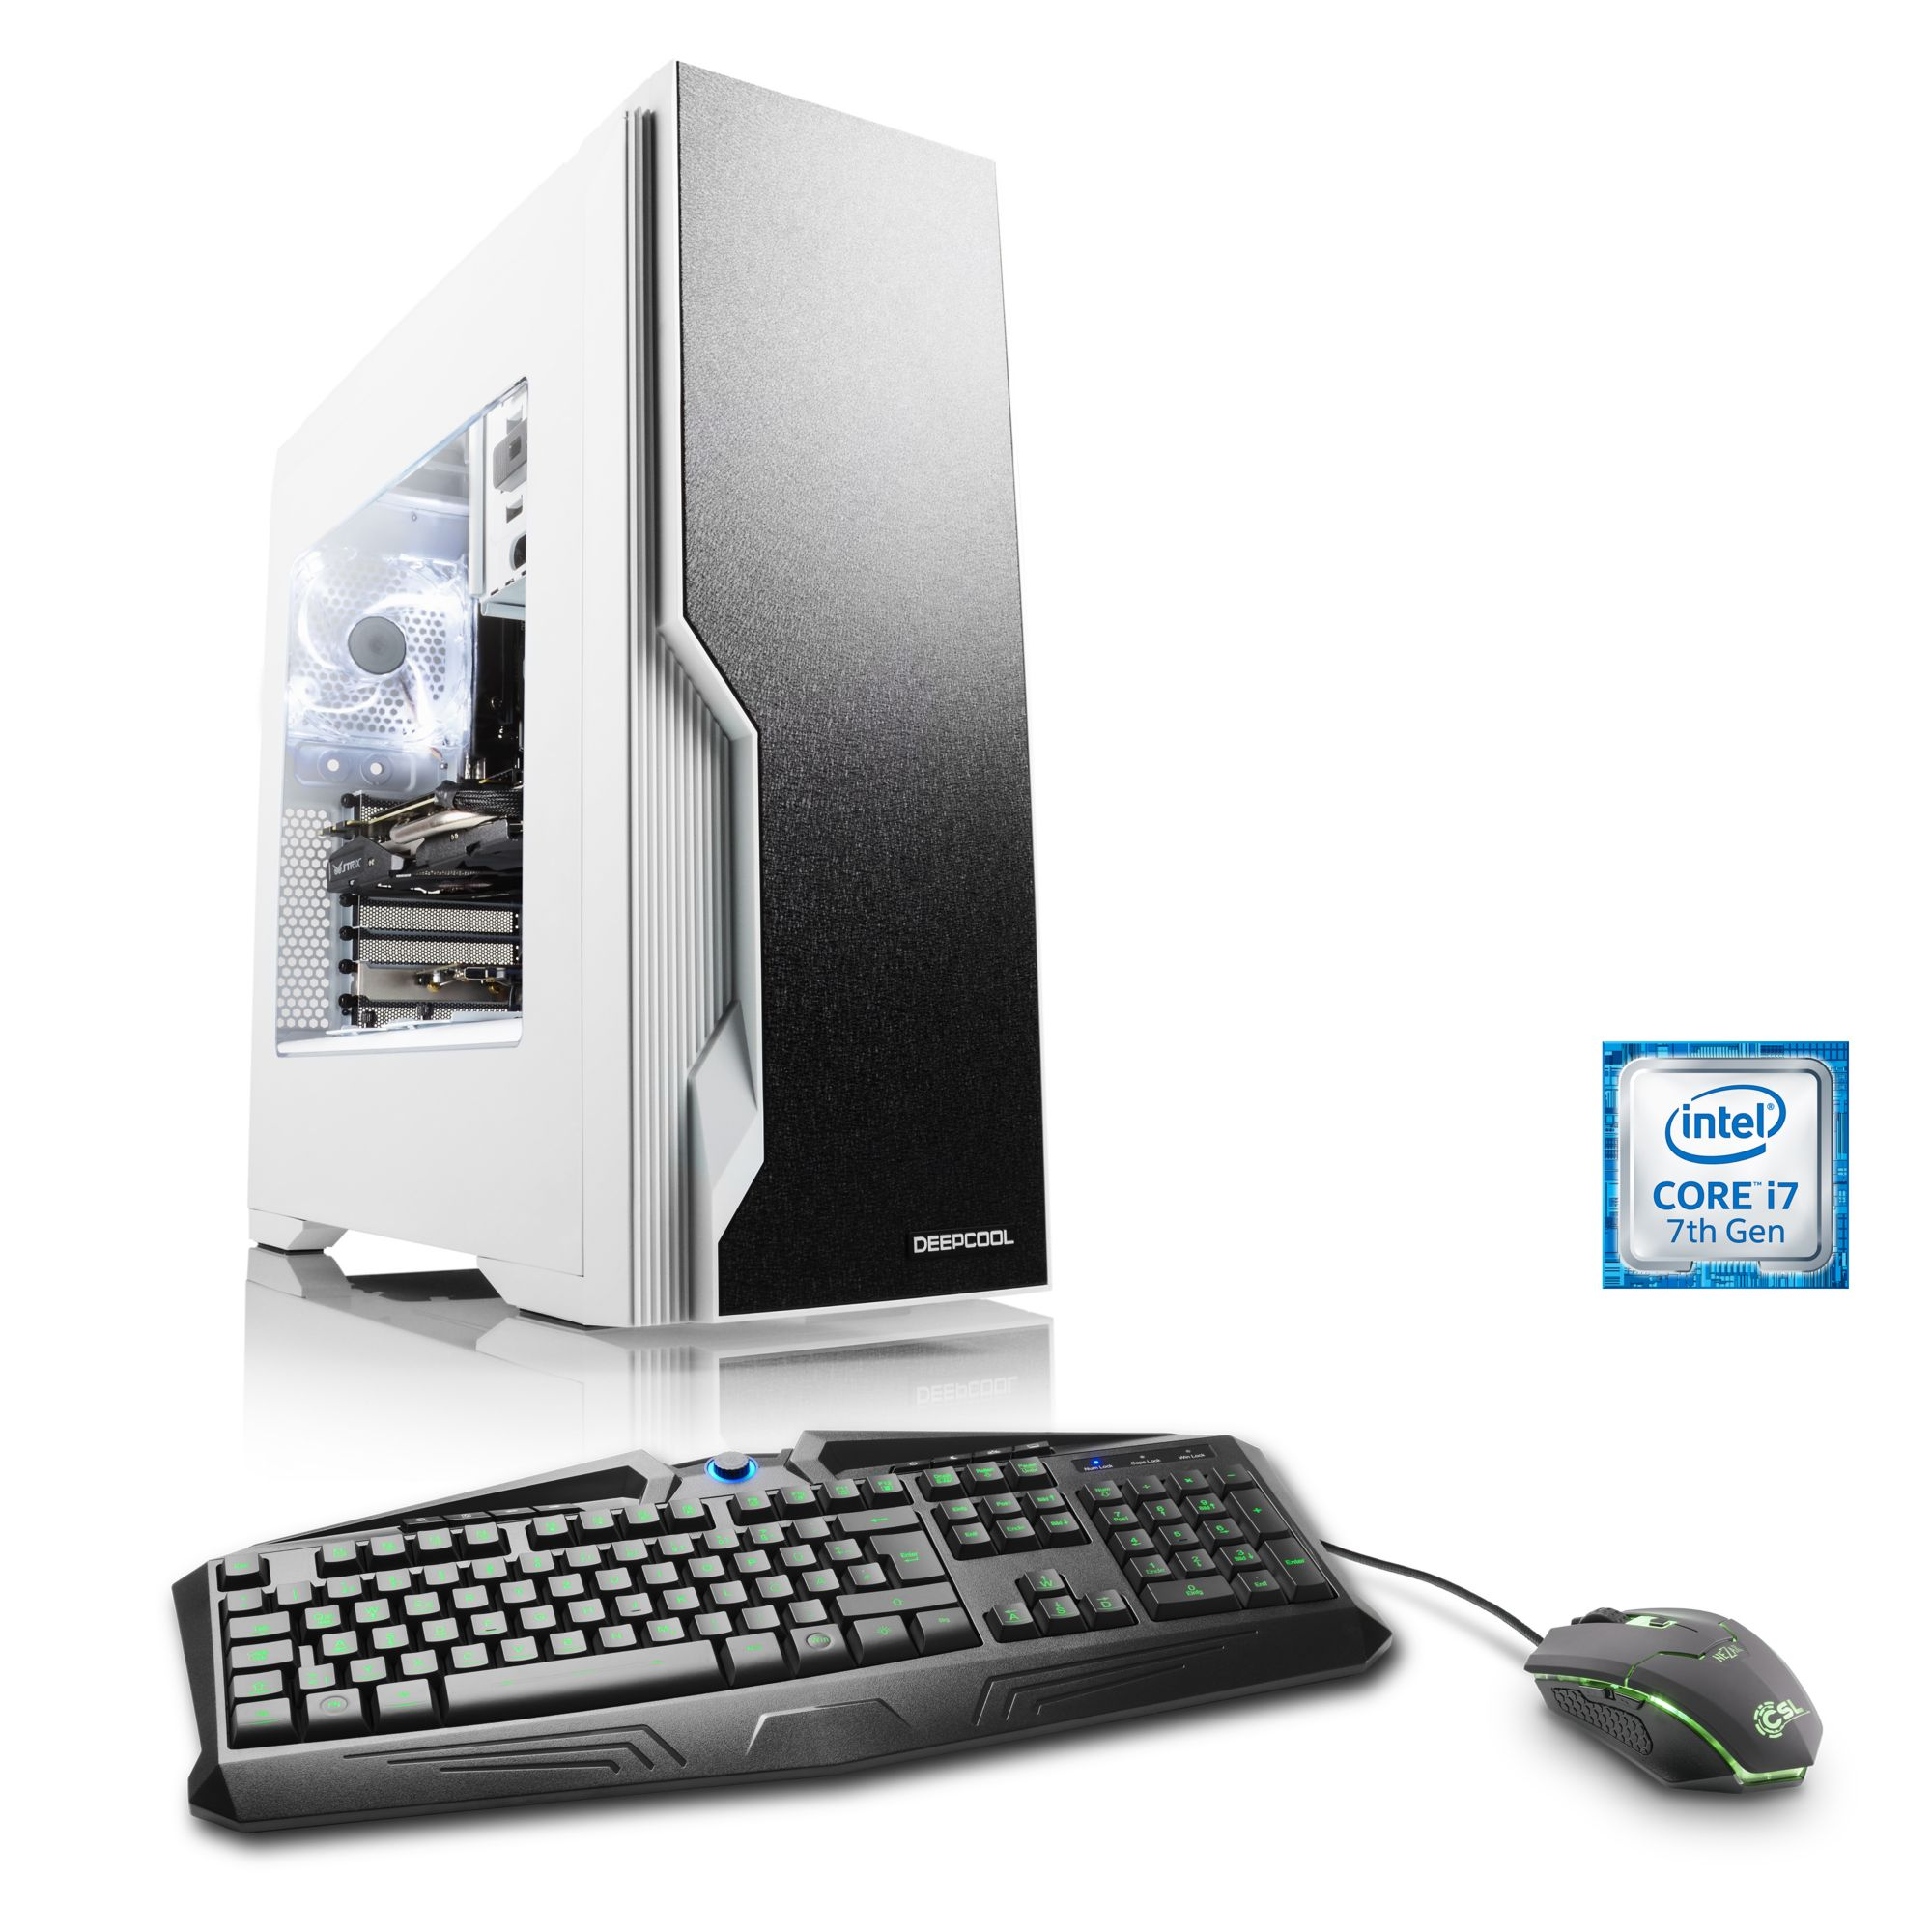 CSL  Extreme Gaming PC | i7-7700K | GTX 1080 | 32GB DDR4 | 250GB SSD »Immortalis T7535 Windows 10«